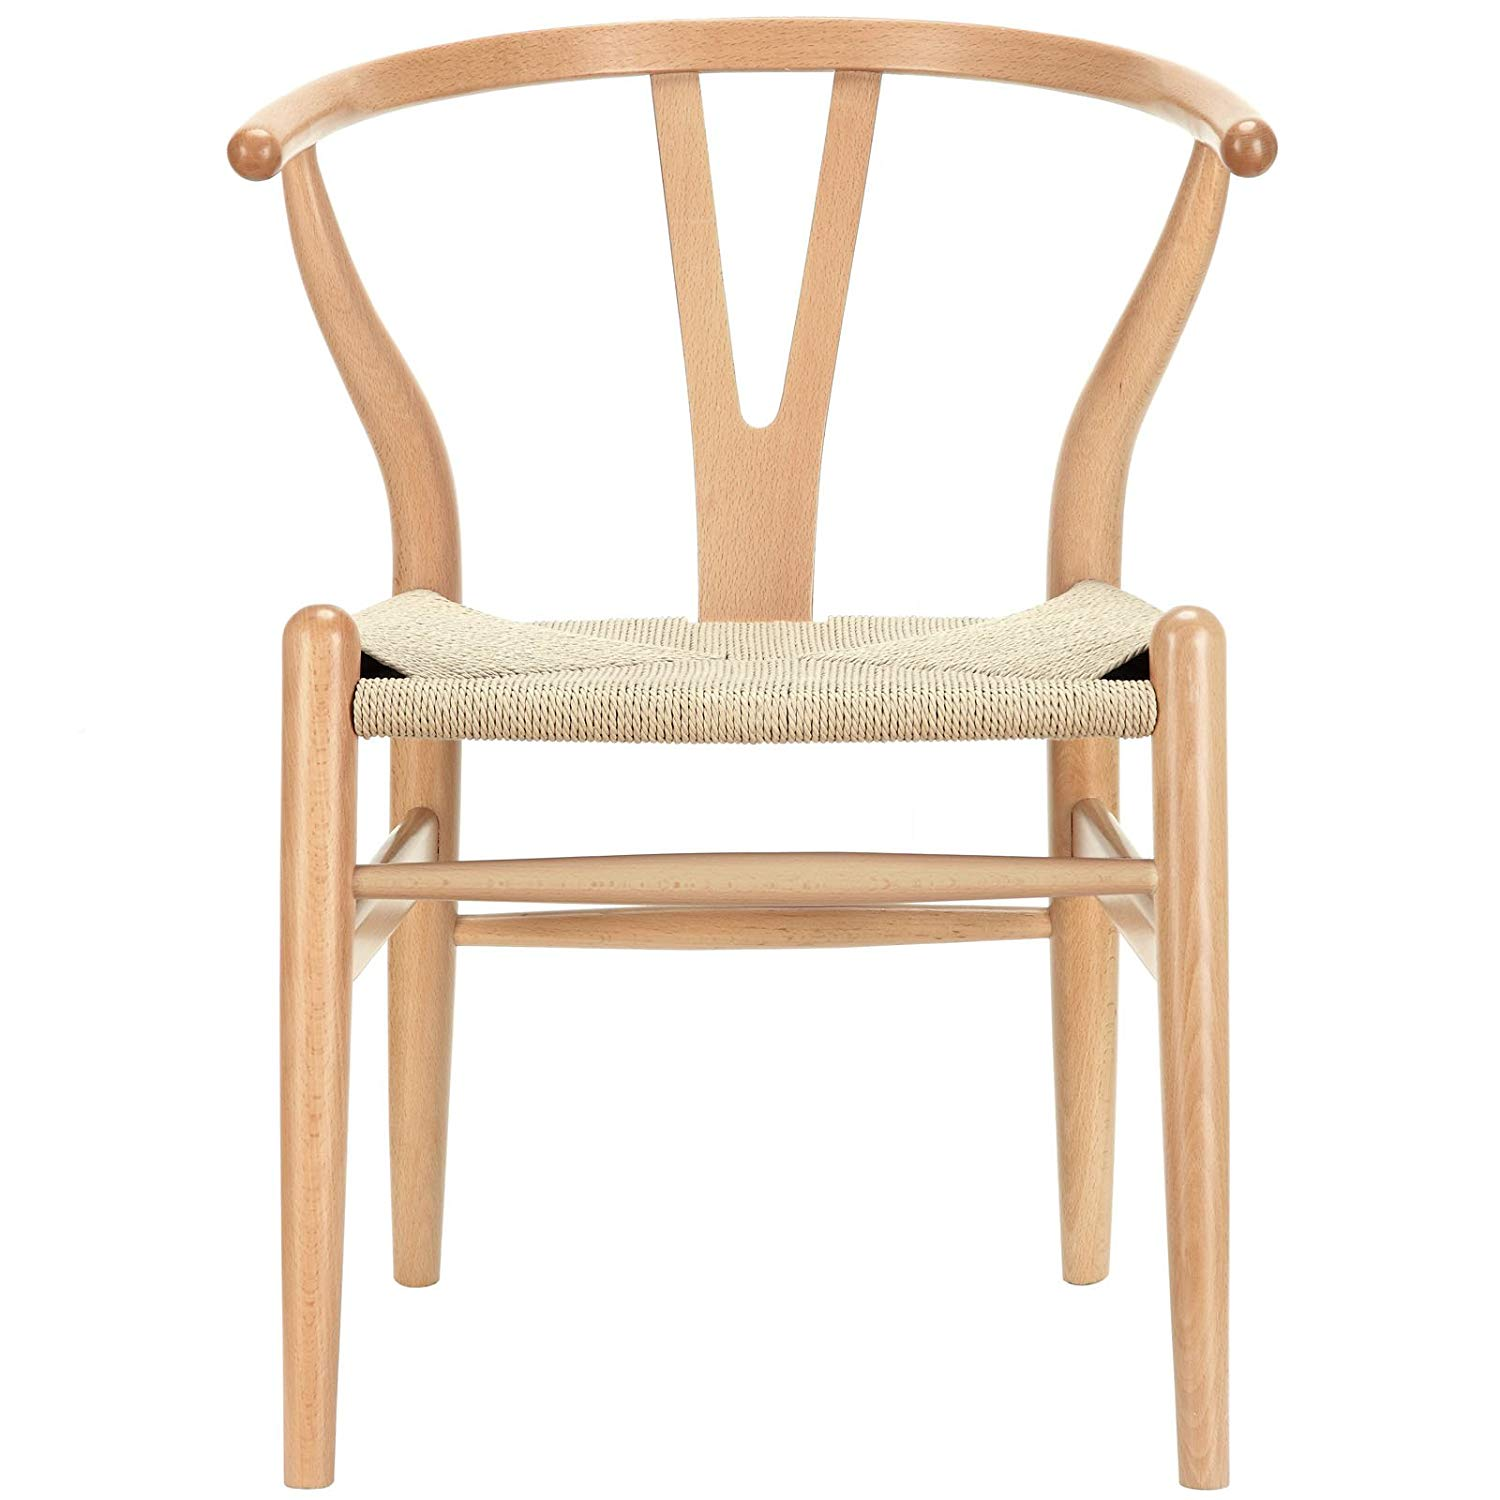 Modway Amish Mid-Century Dining Chair in Natural - $161.82